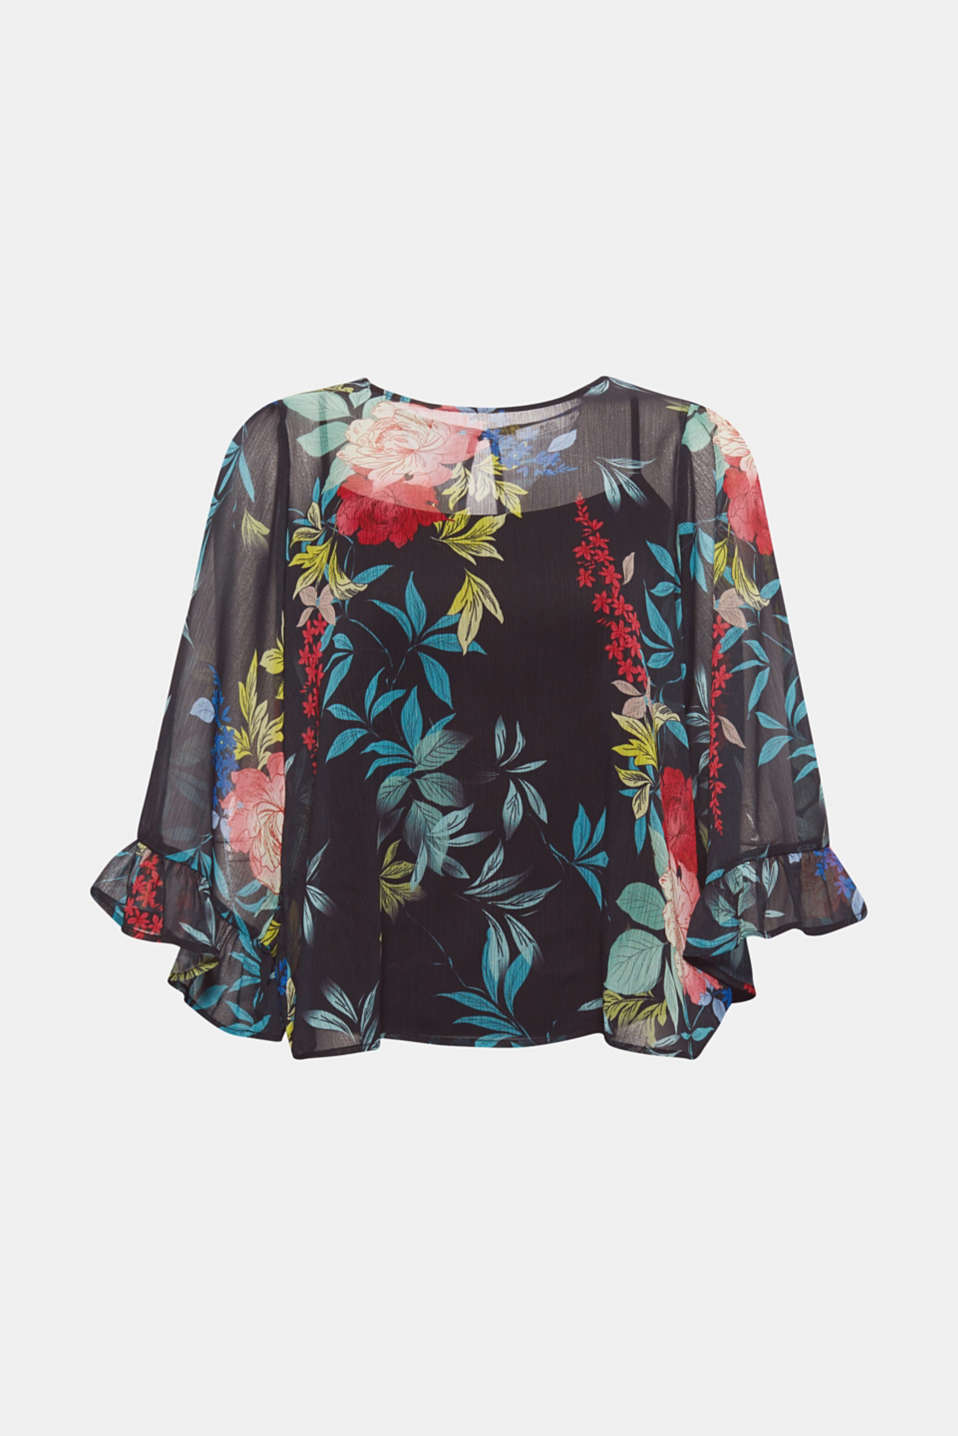 This chiffon blouse featuring a romantic floral print, airy flounce sleeves and an opaque inner top epitomises Boho Chic at its finest.